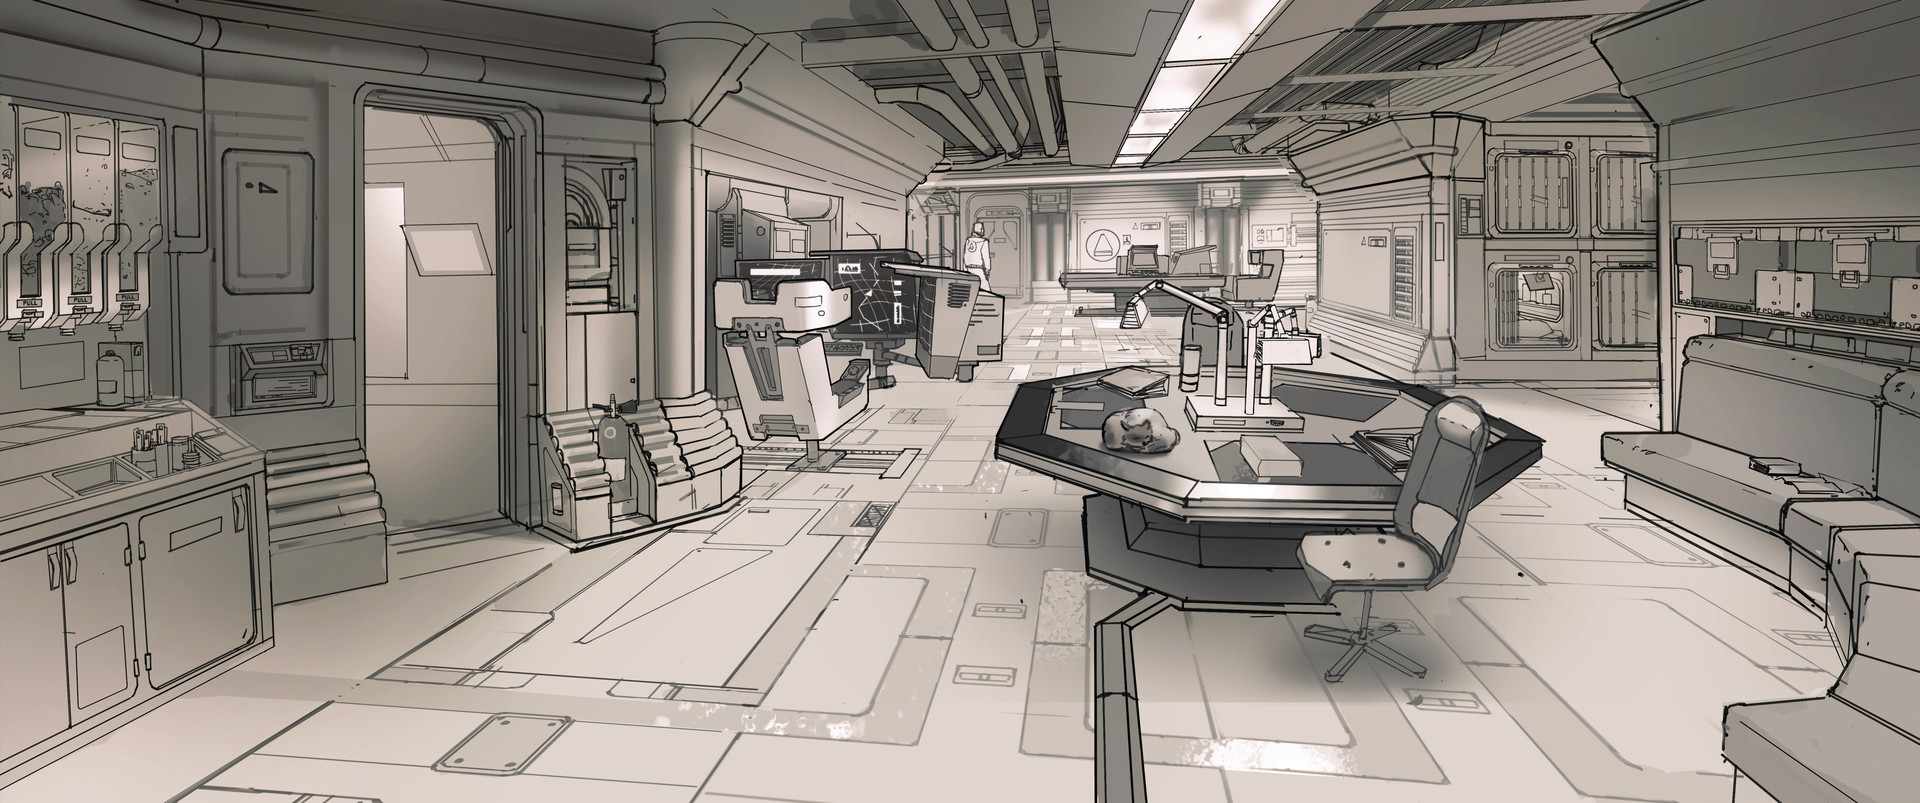 Adrien girod ag demo space station linework01